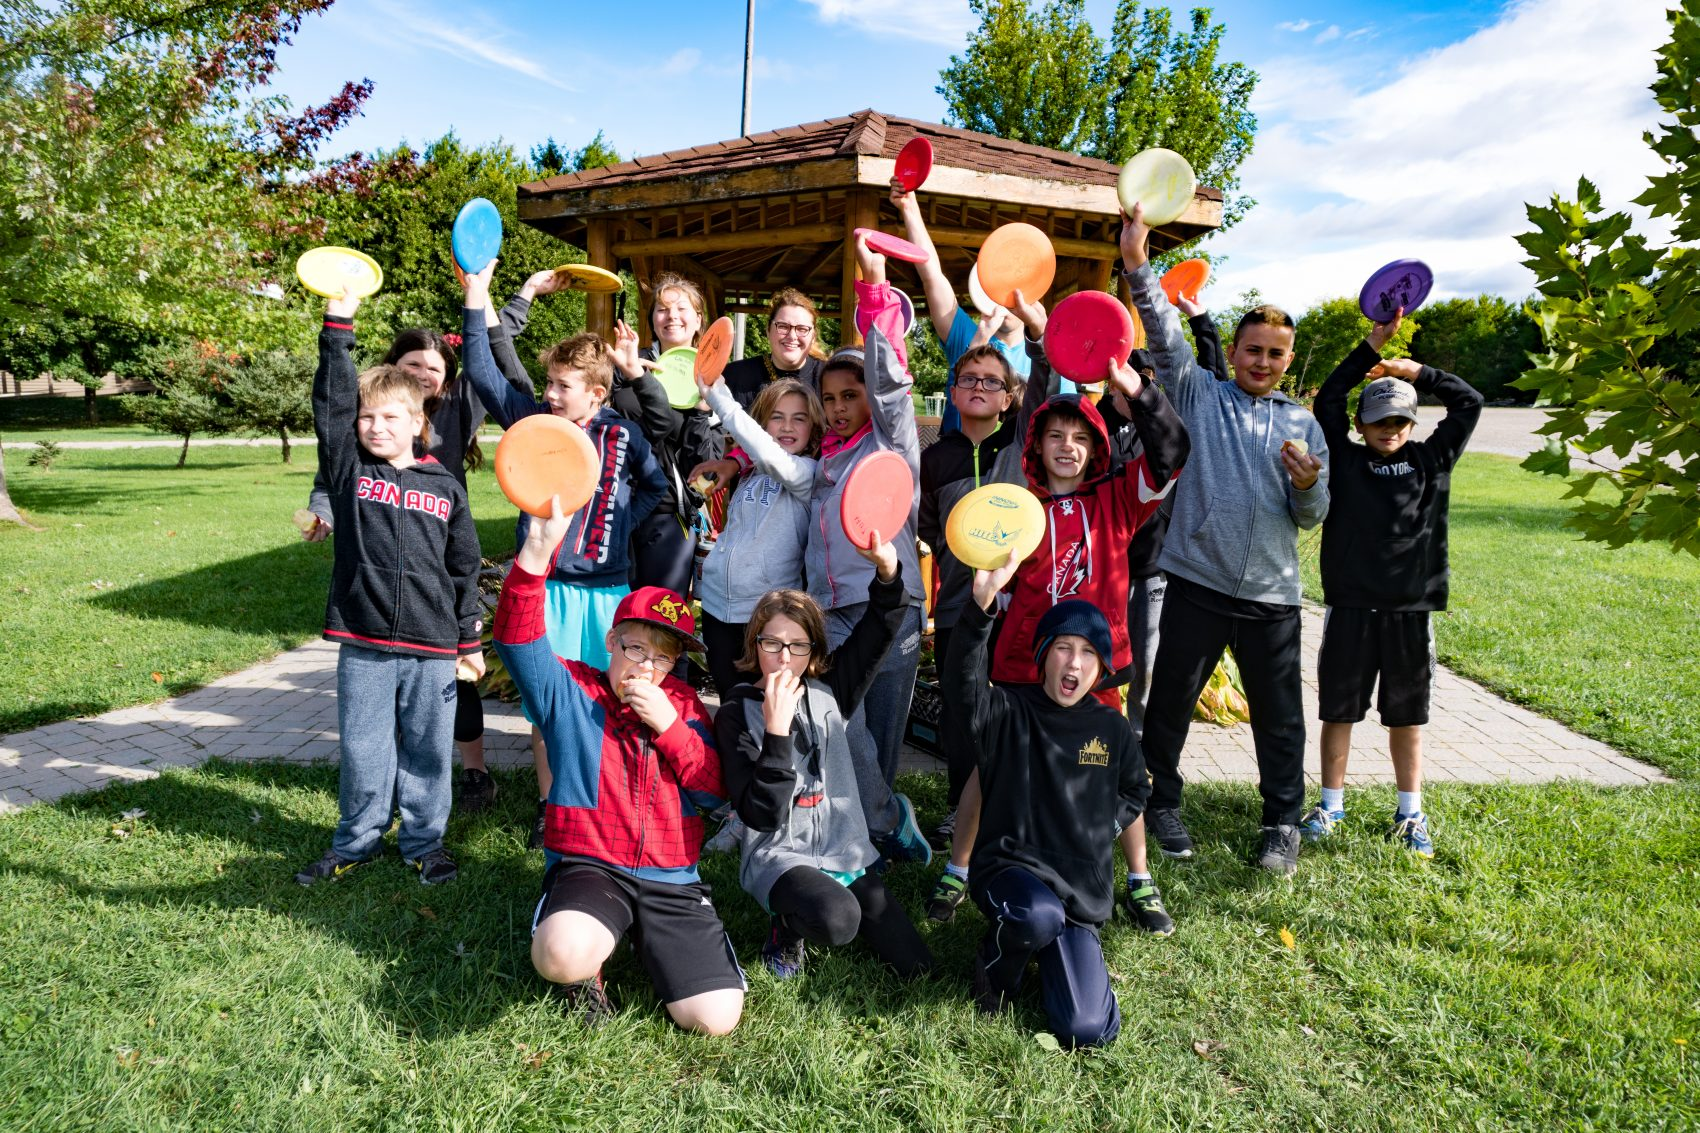 A group of staff and campers are posing in front of a gazebo holding up their discs from disc golf programming at summer camp.